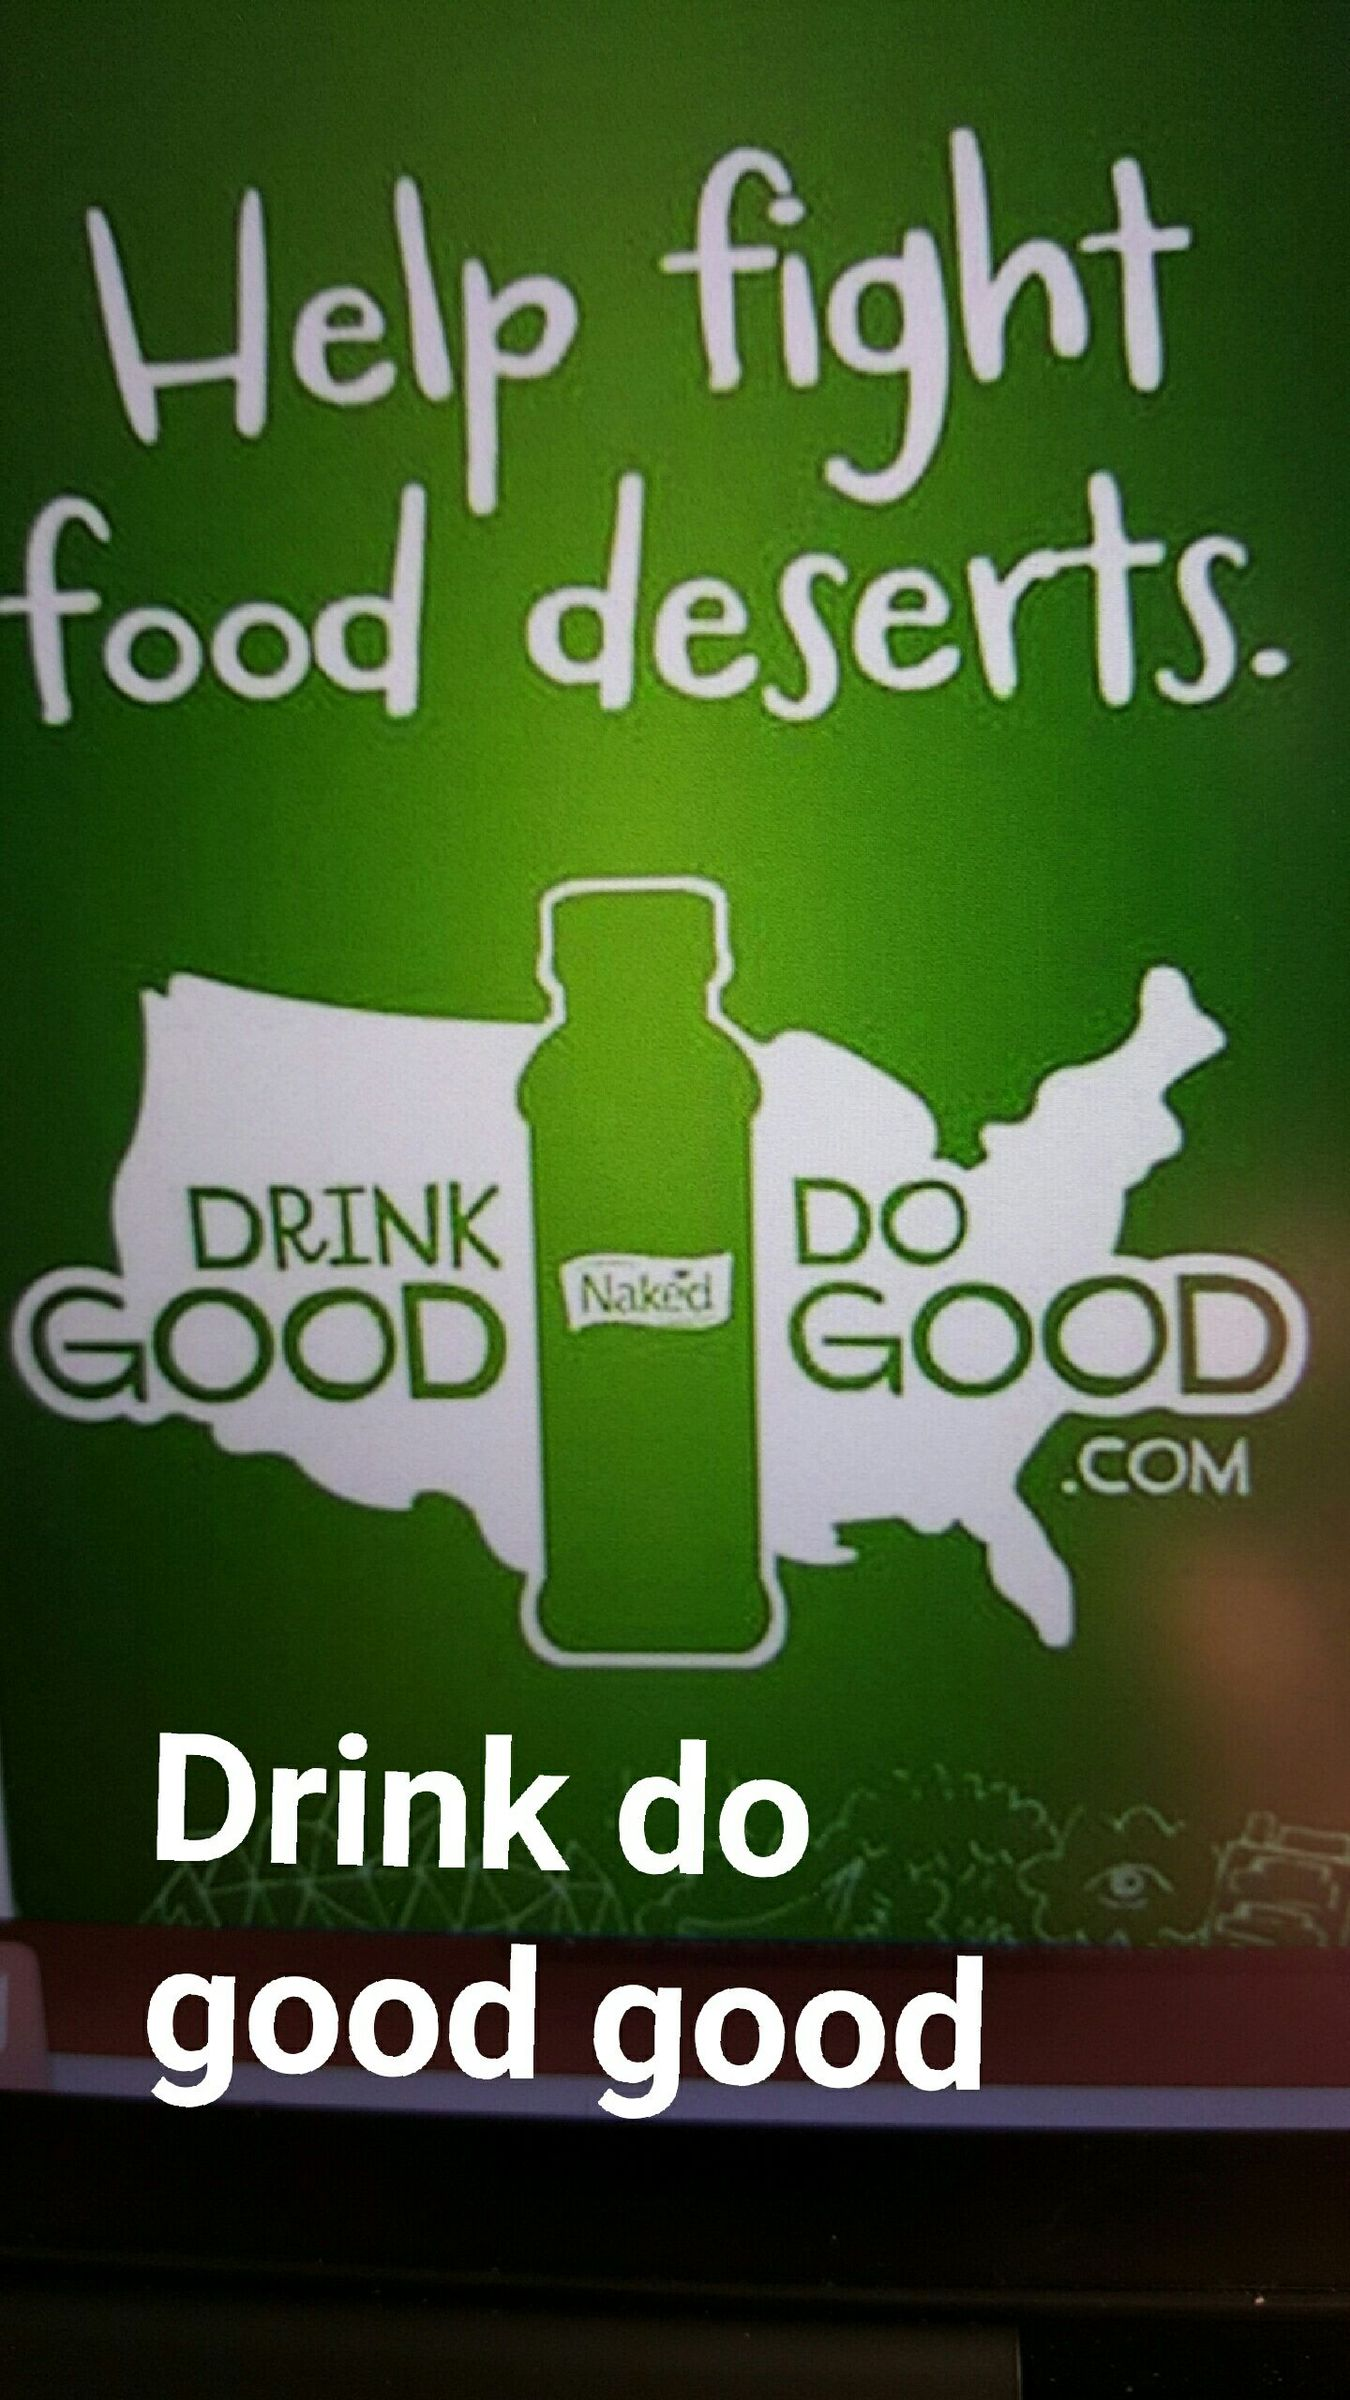 Drink Good, Do Good. But at first I was like Drink DO GOOD GOOD? - meme